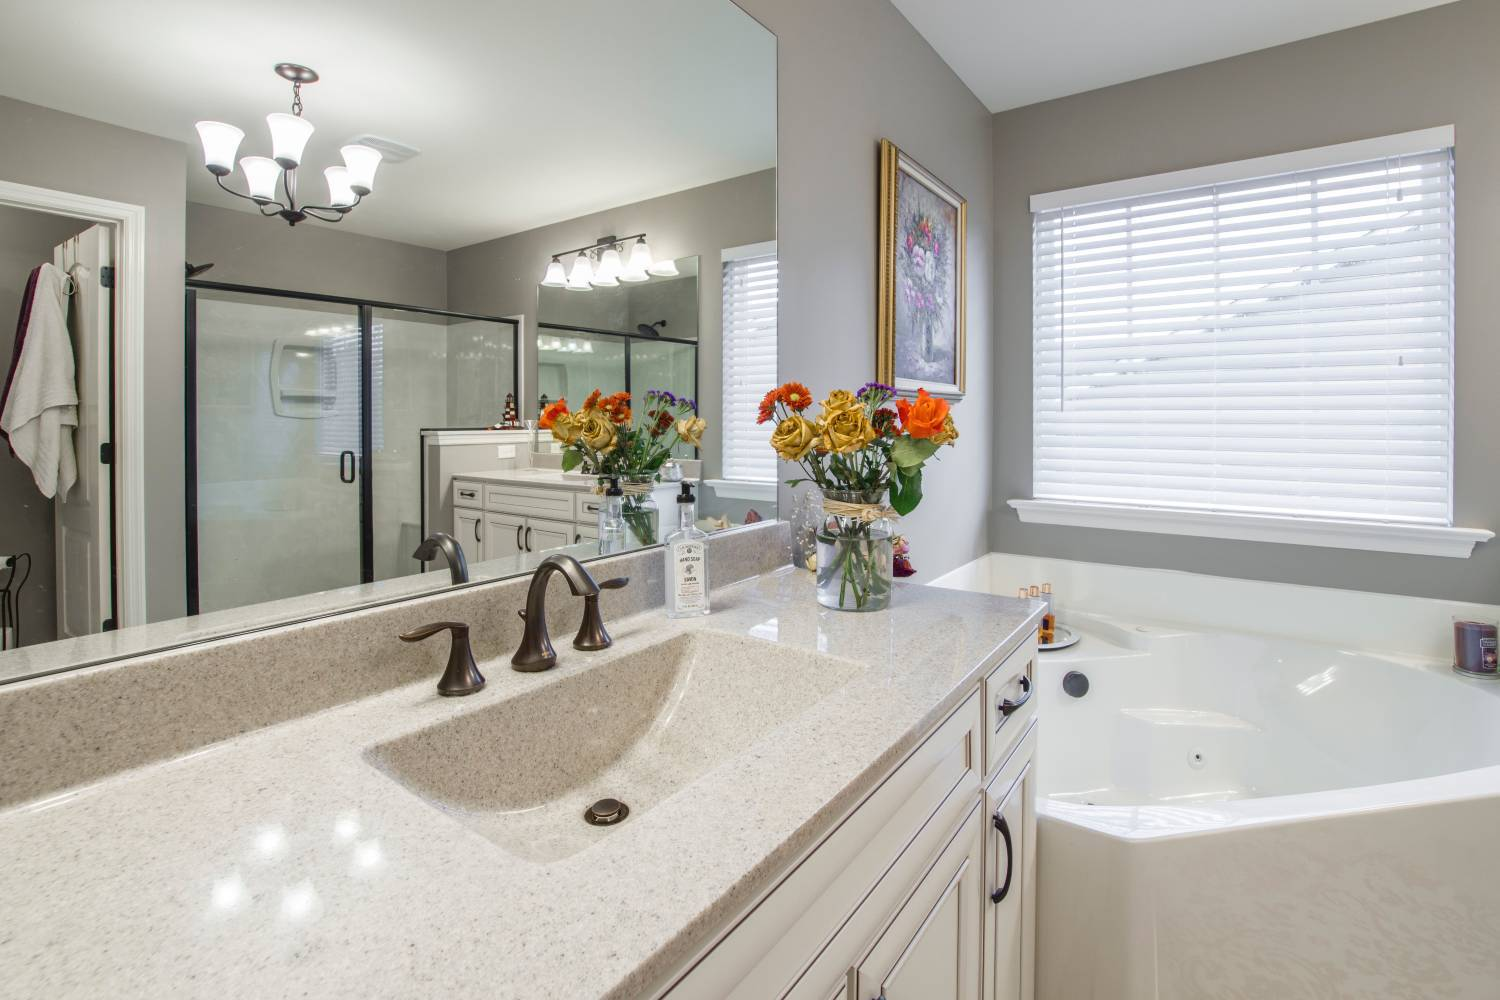 7 Bathroom Remodel Ideas To Look Out For In 2020 Kbr Kitchen Bath